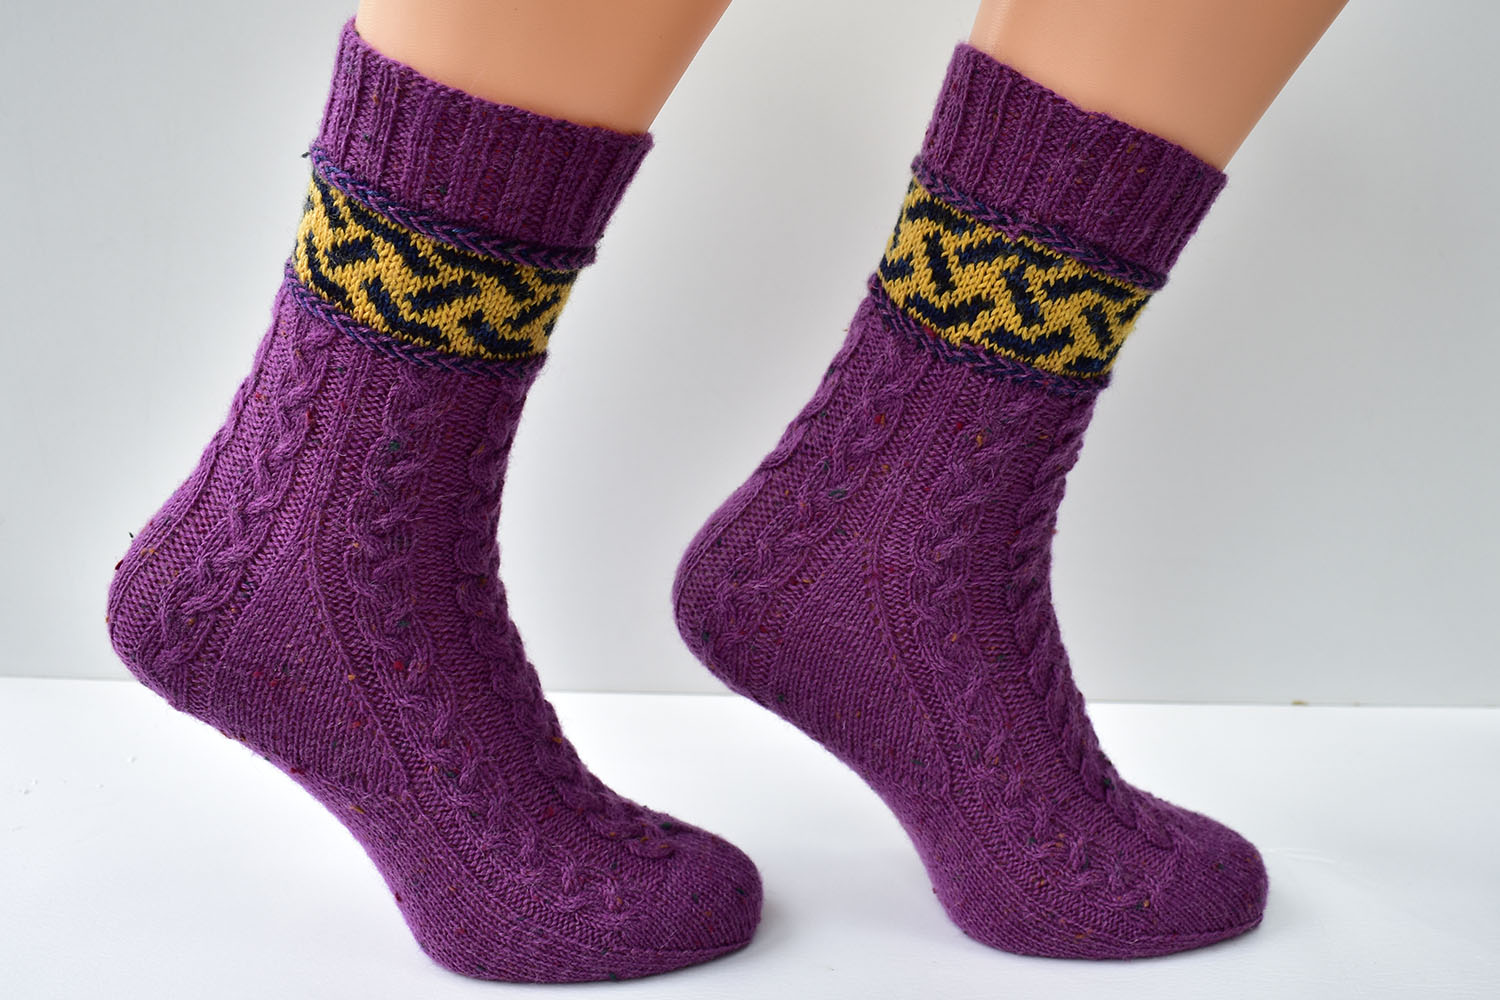 Braidalot sock pattern by Dots Dabbles